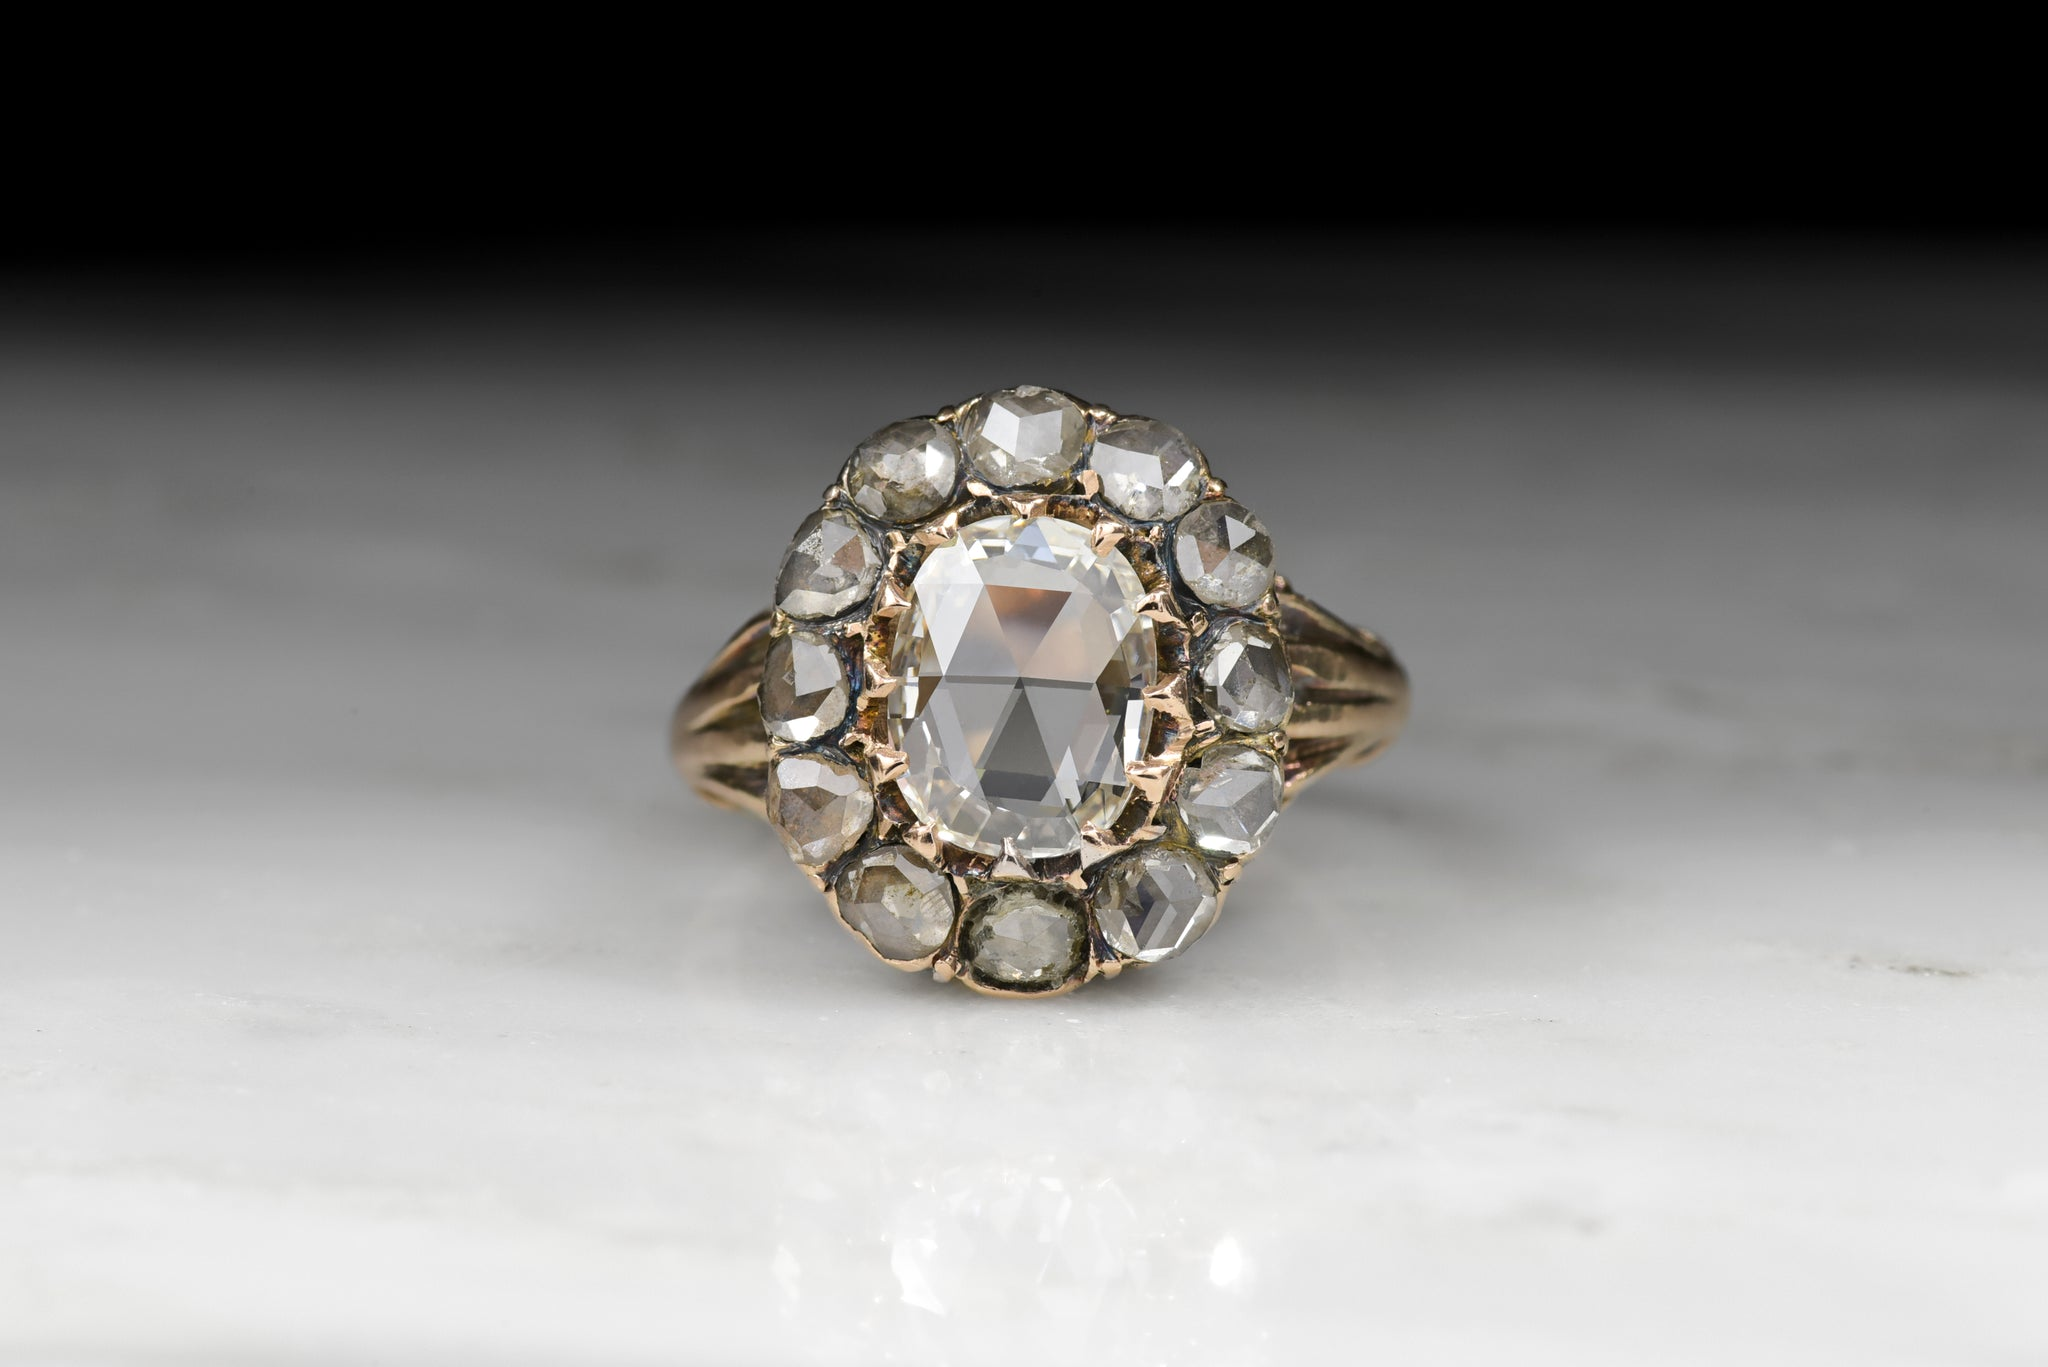 Antique Victorian Engagement Ring with Oval Rose Cut Diamond and